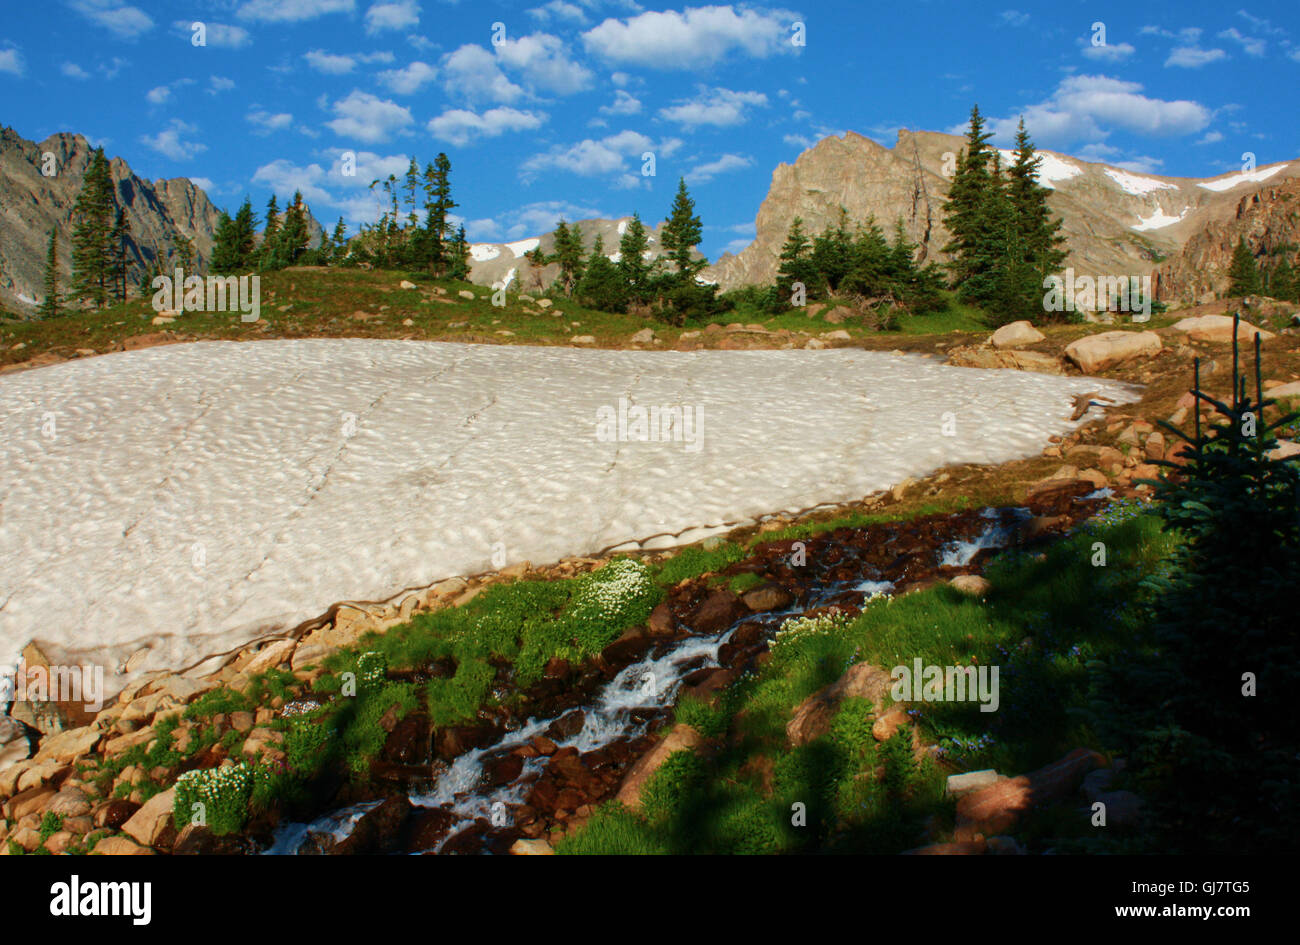 Snowfield and mountain stream near Pawnee Pass in Colorado. - Stock Image